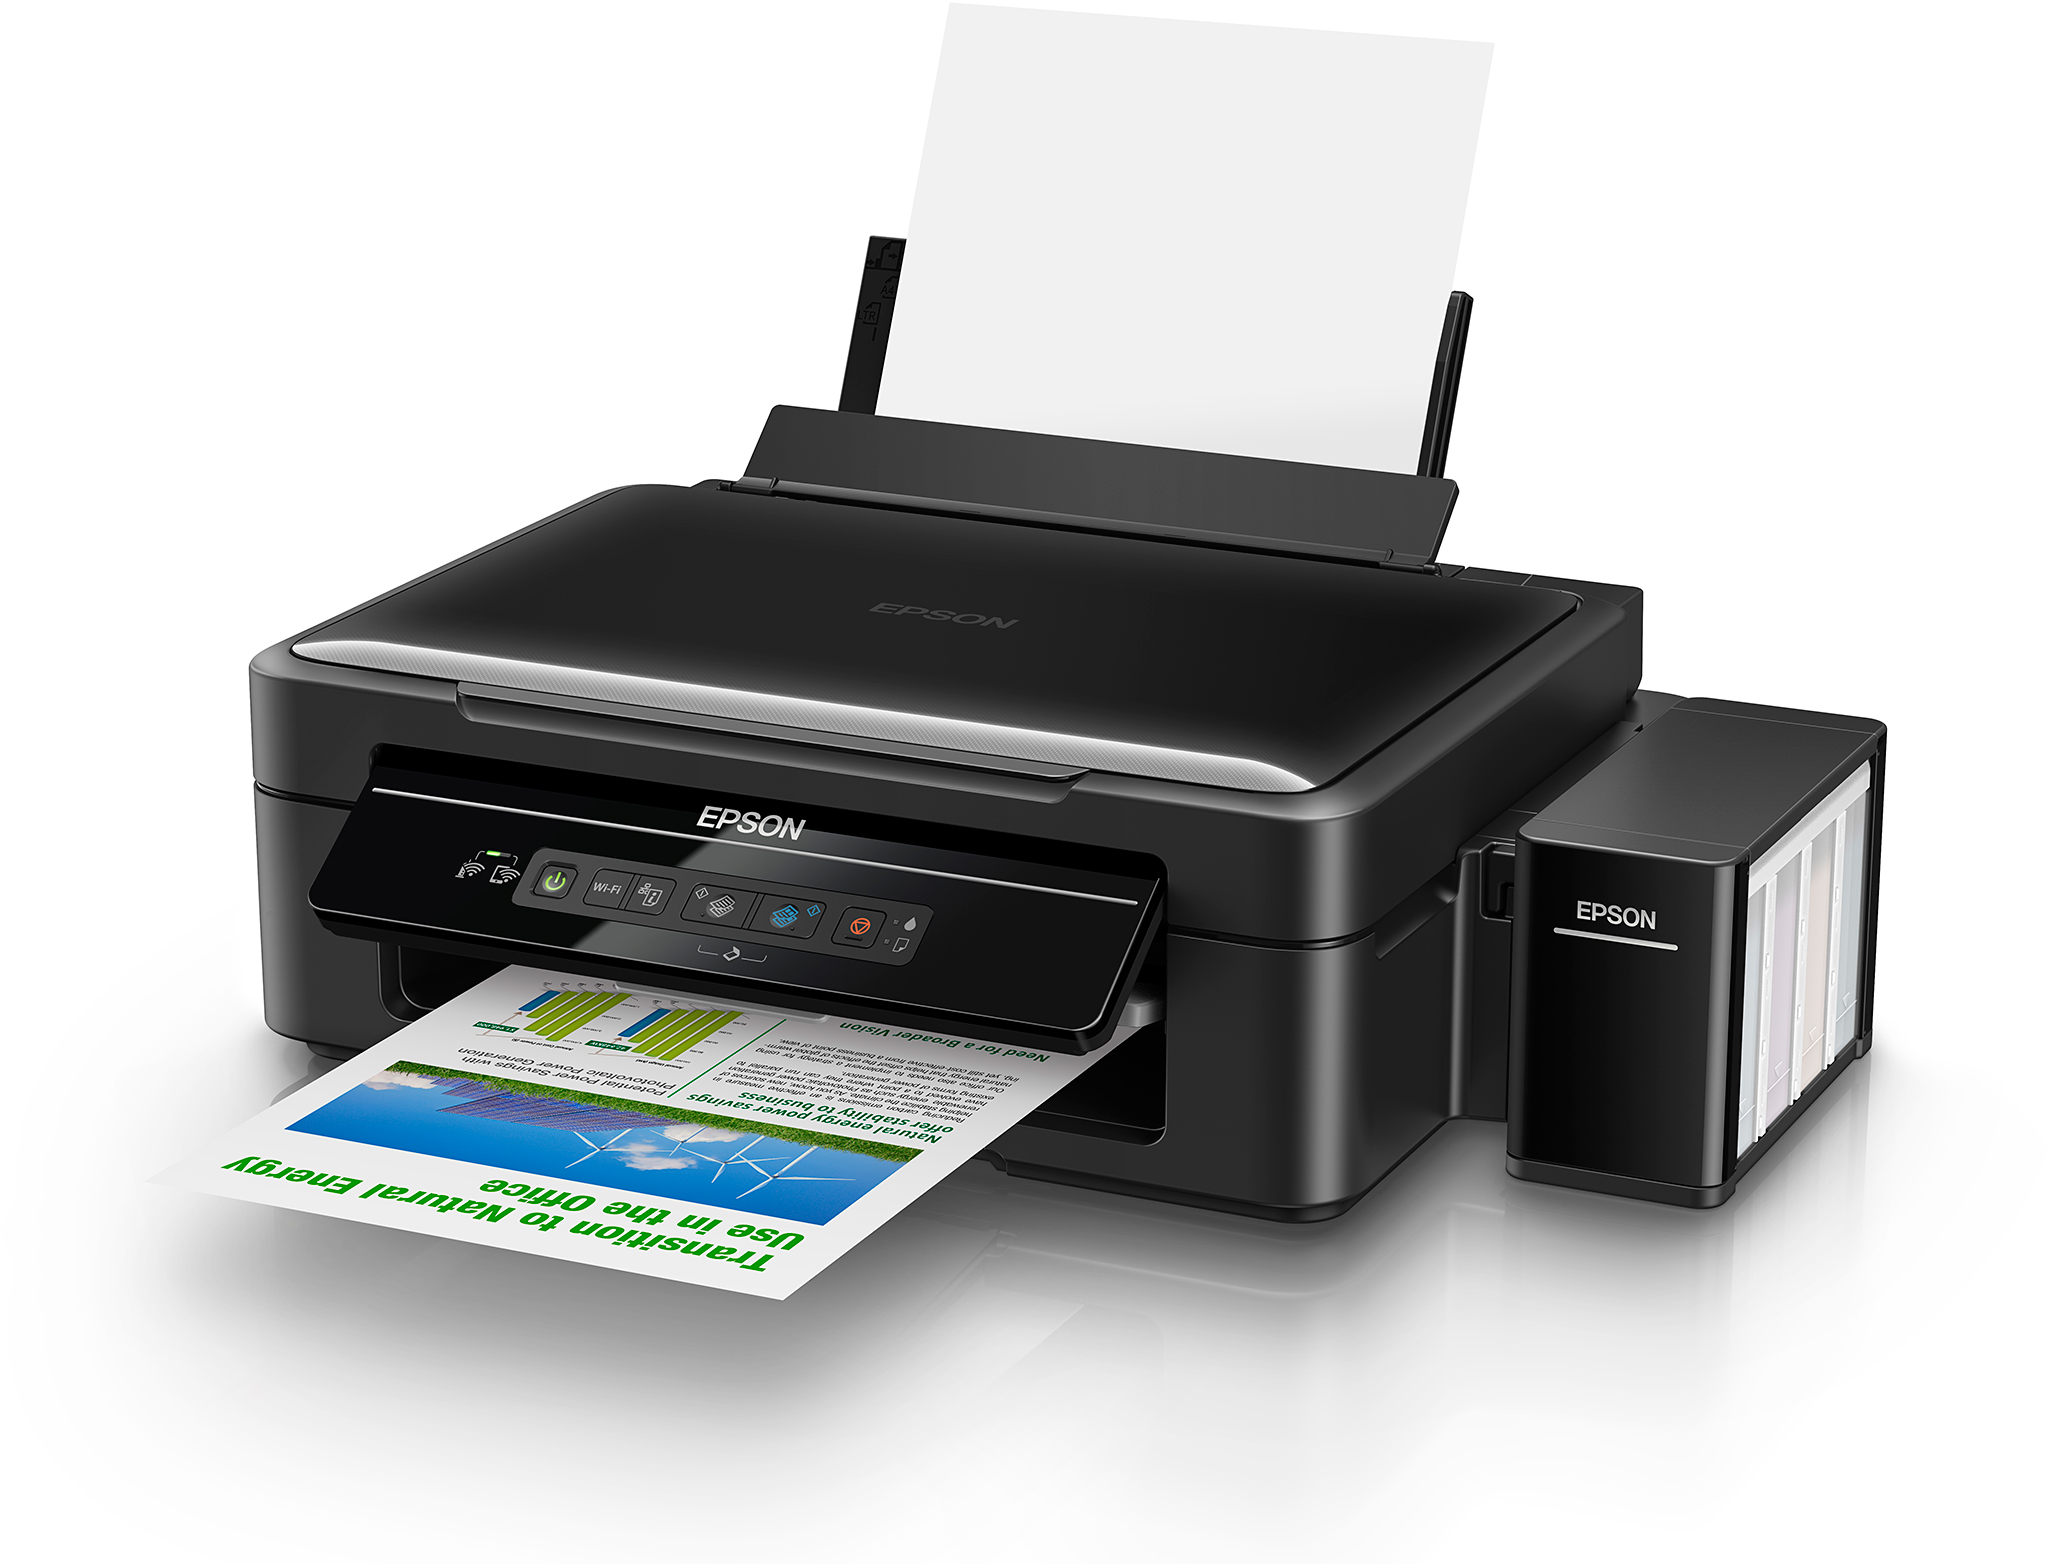 New arrival: Six Epson L-series inkjet printers for 2017